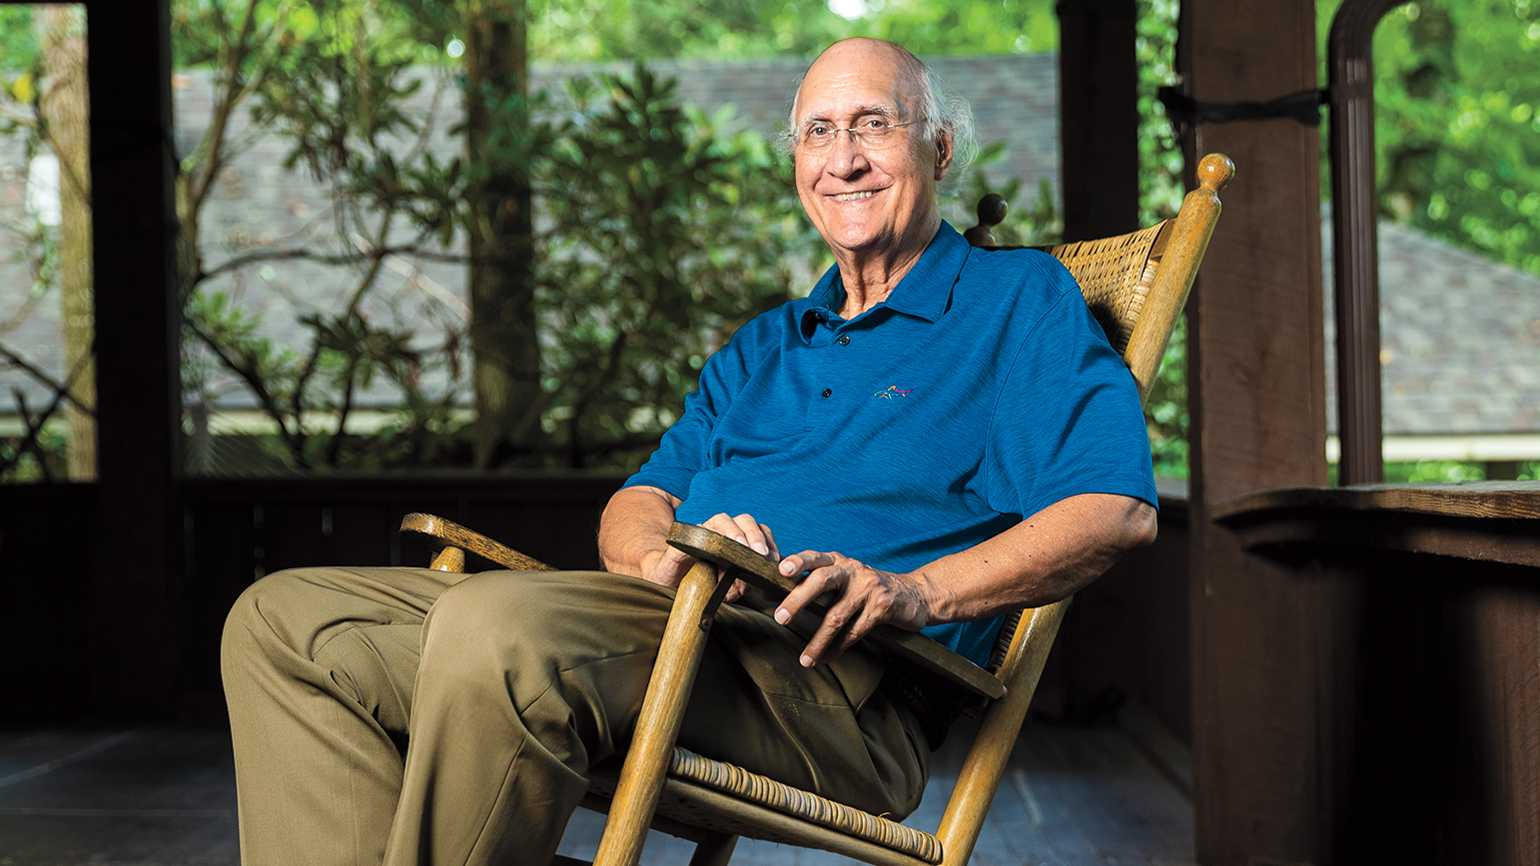 His Caregiving Journey Led Him on a Path of Spiritual Growth